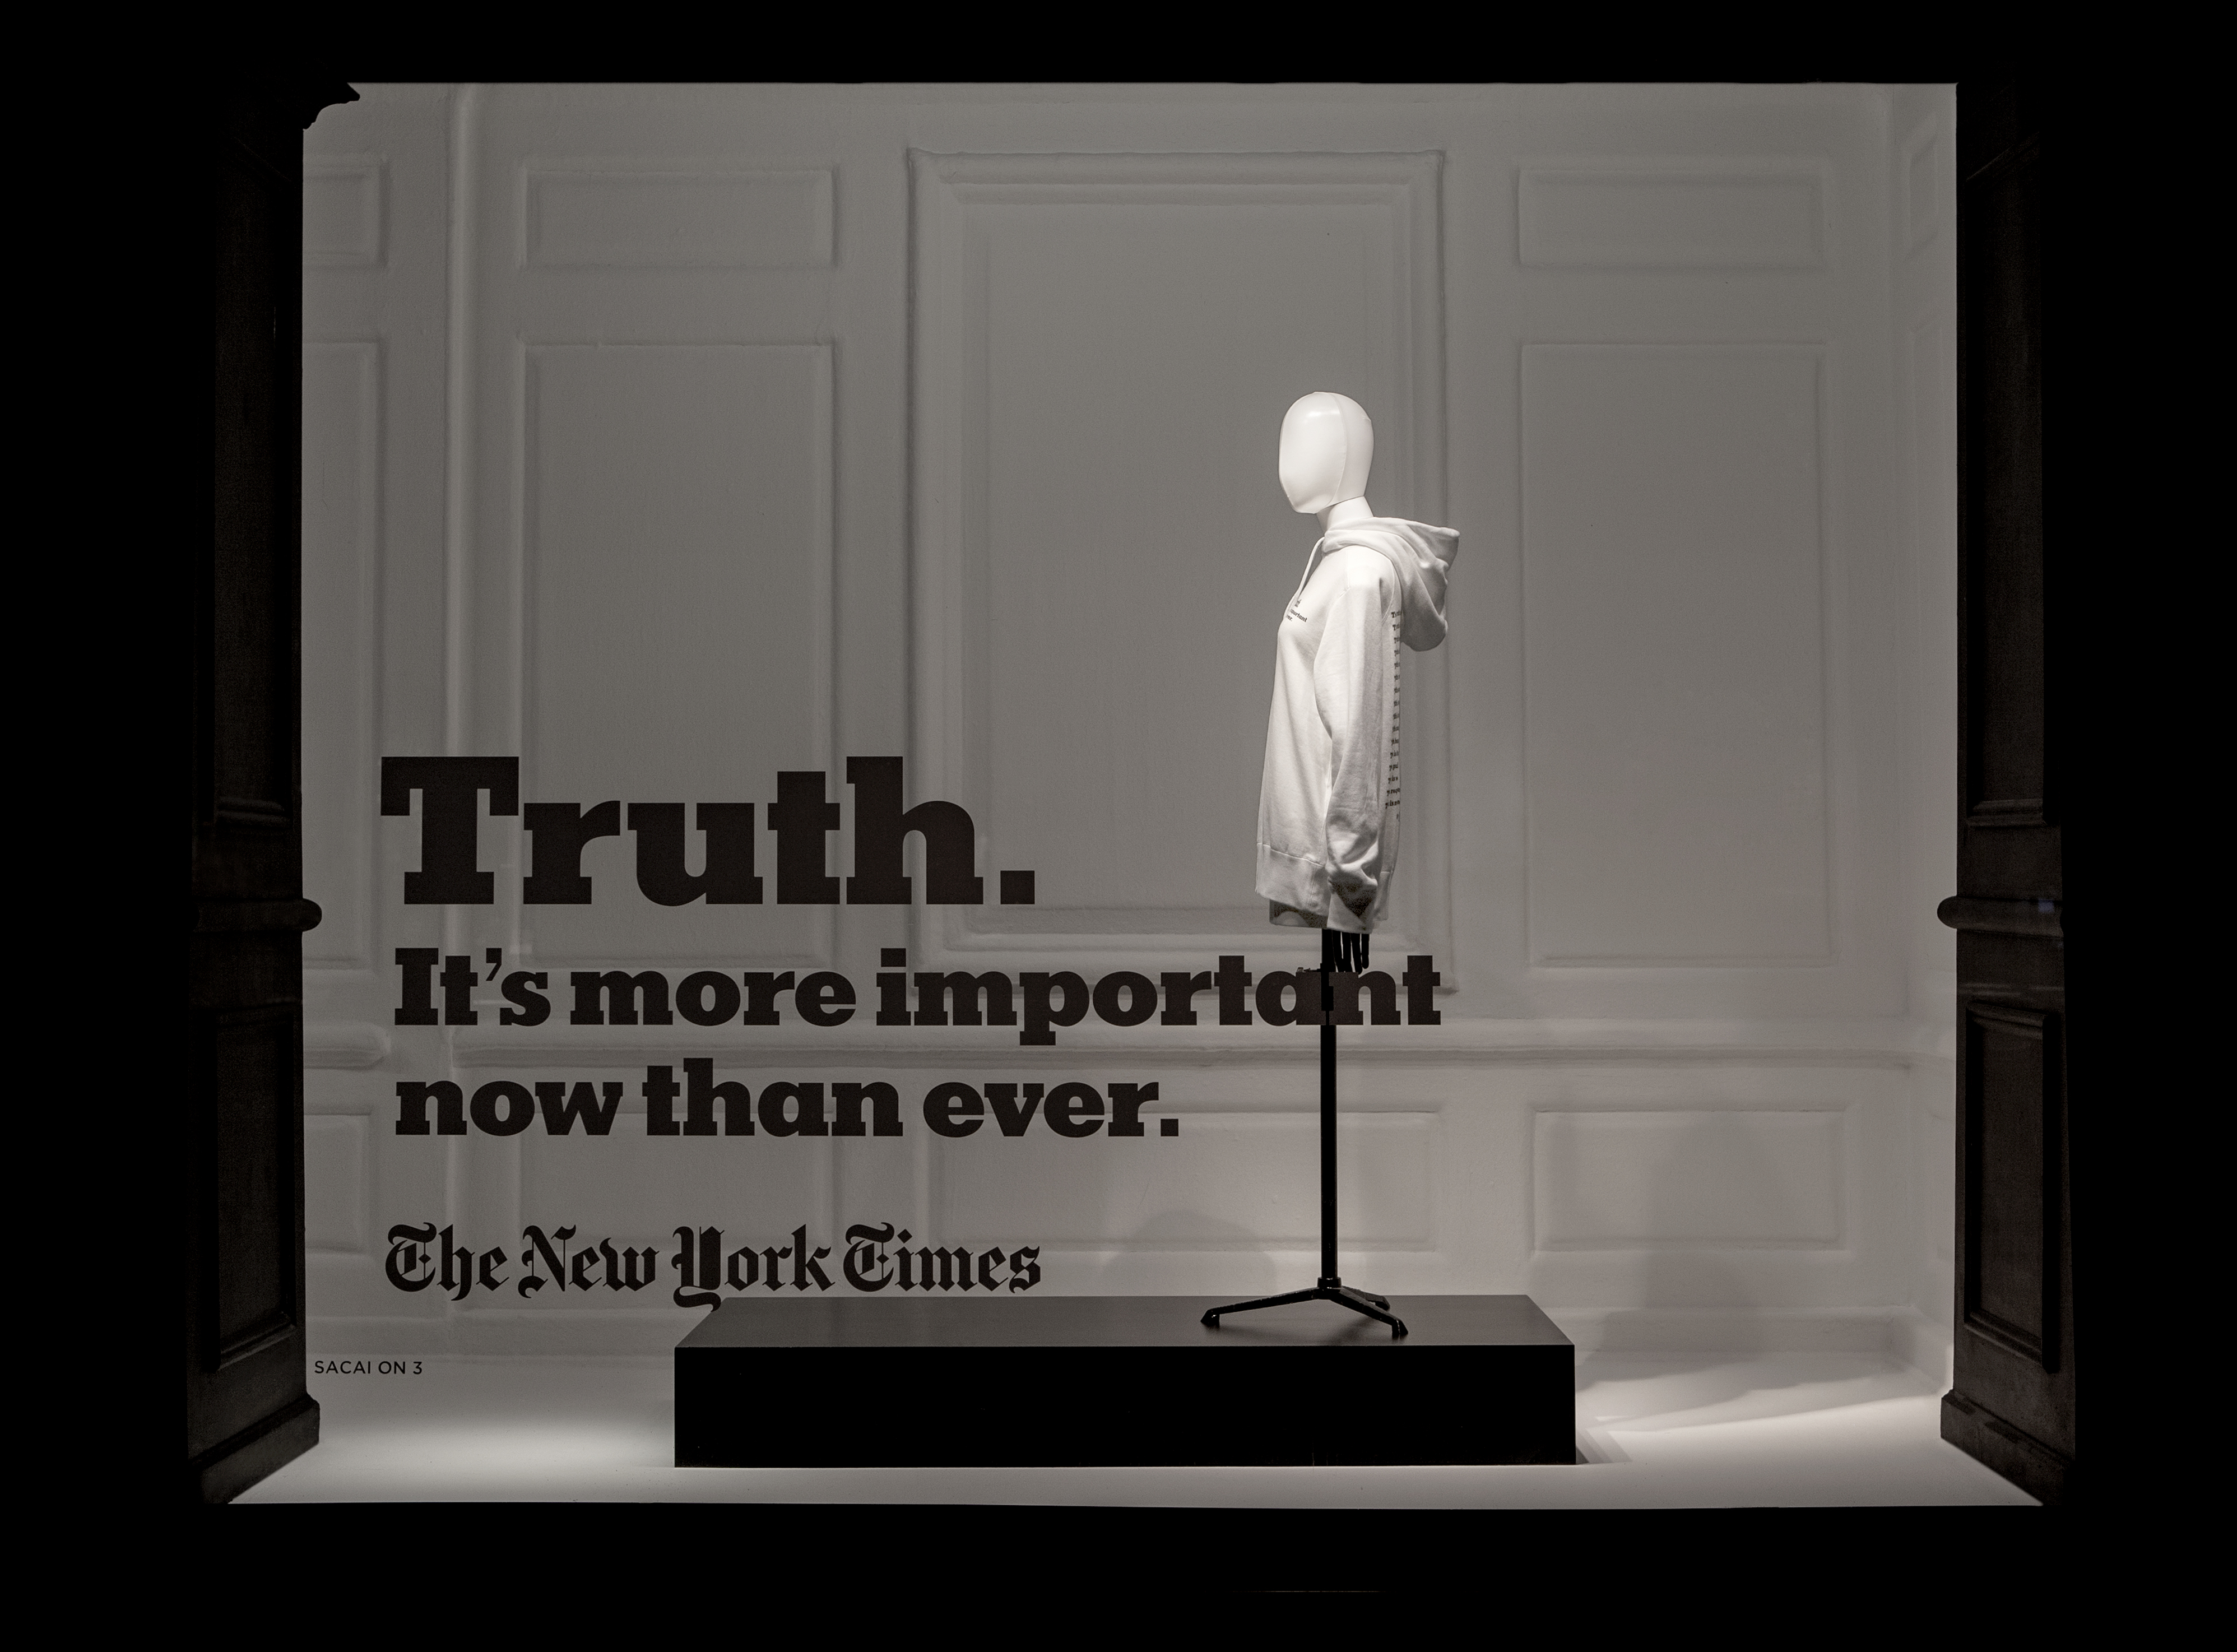 The Sacai New York Times Window at Saks Fifth Avenue.